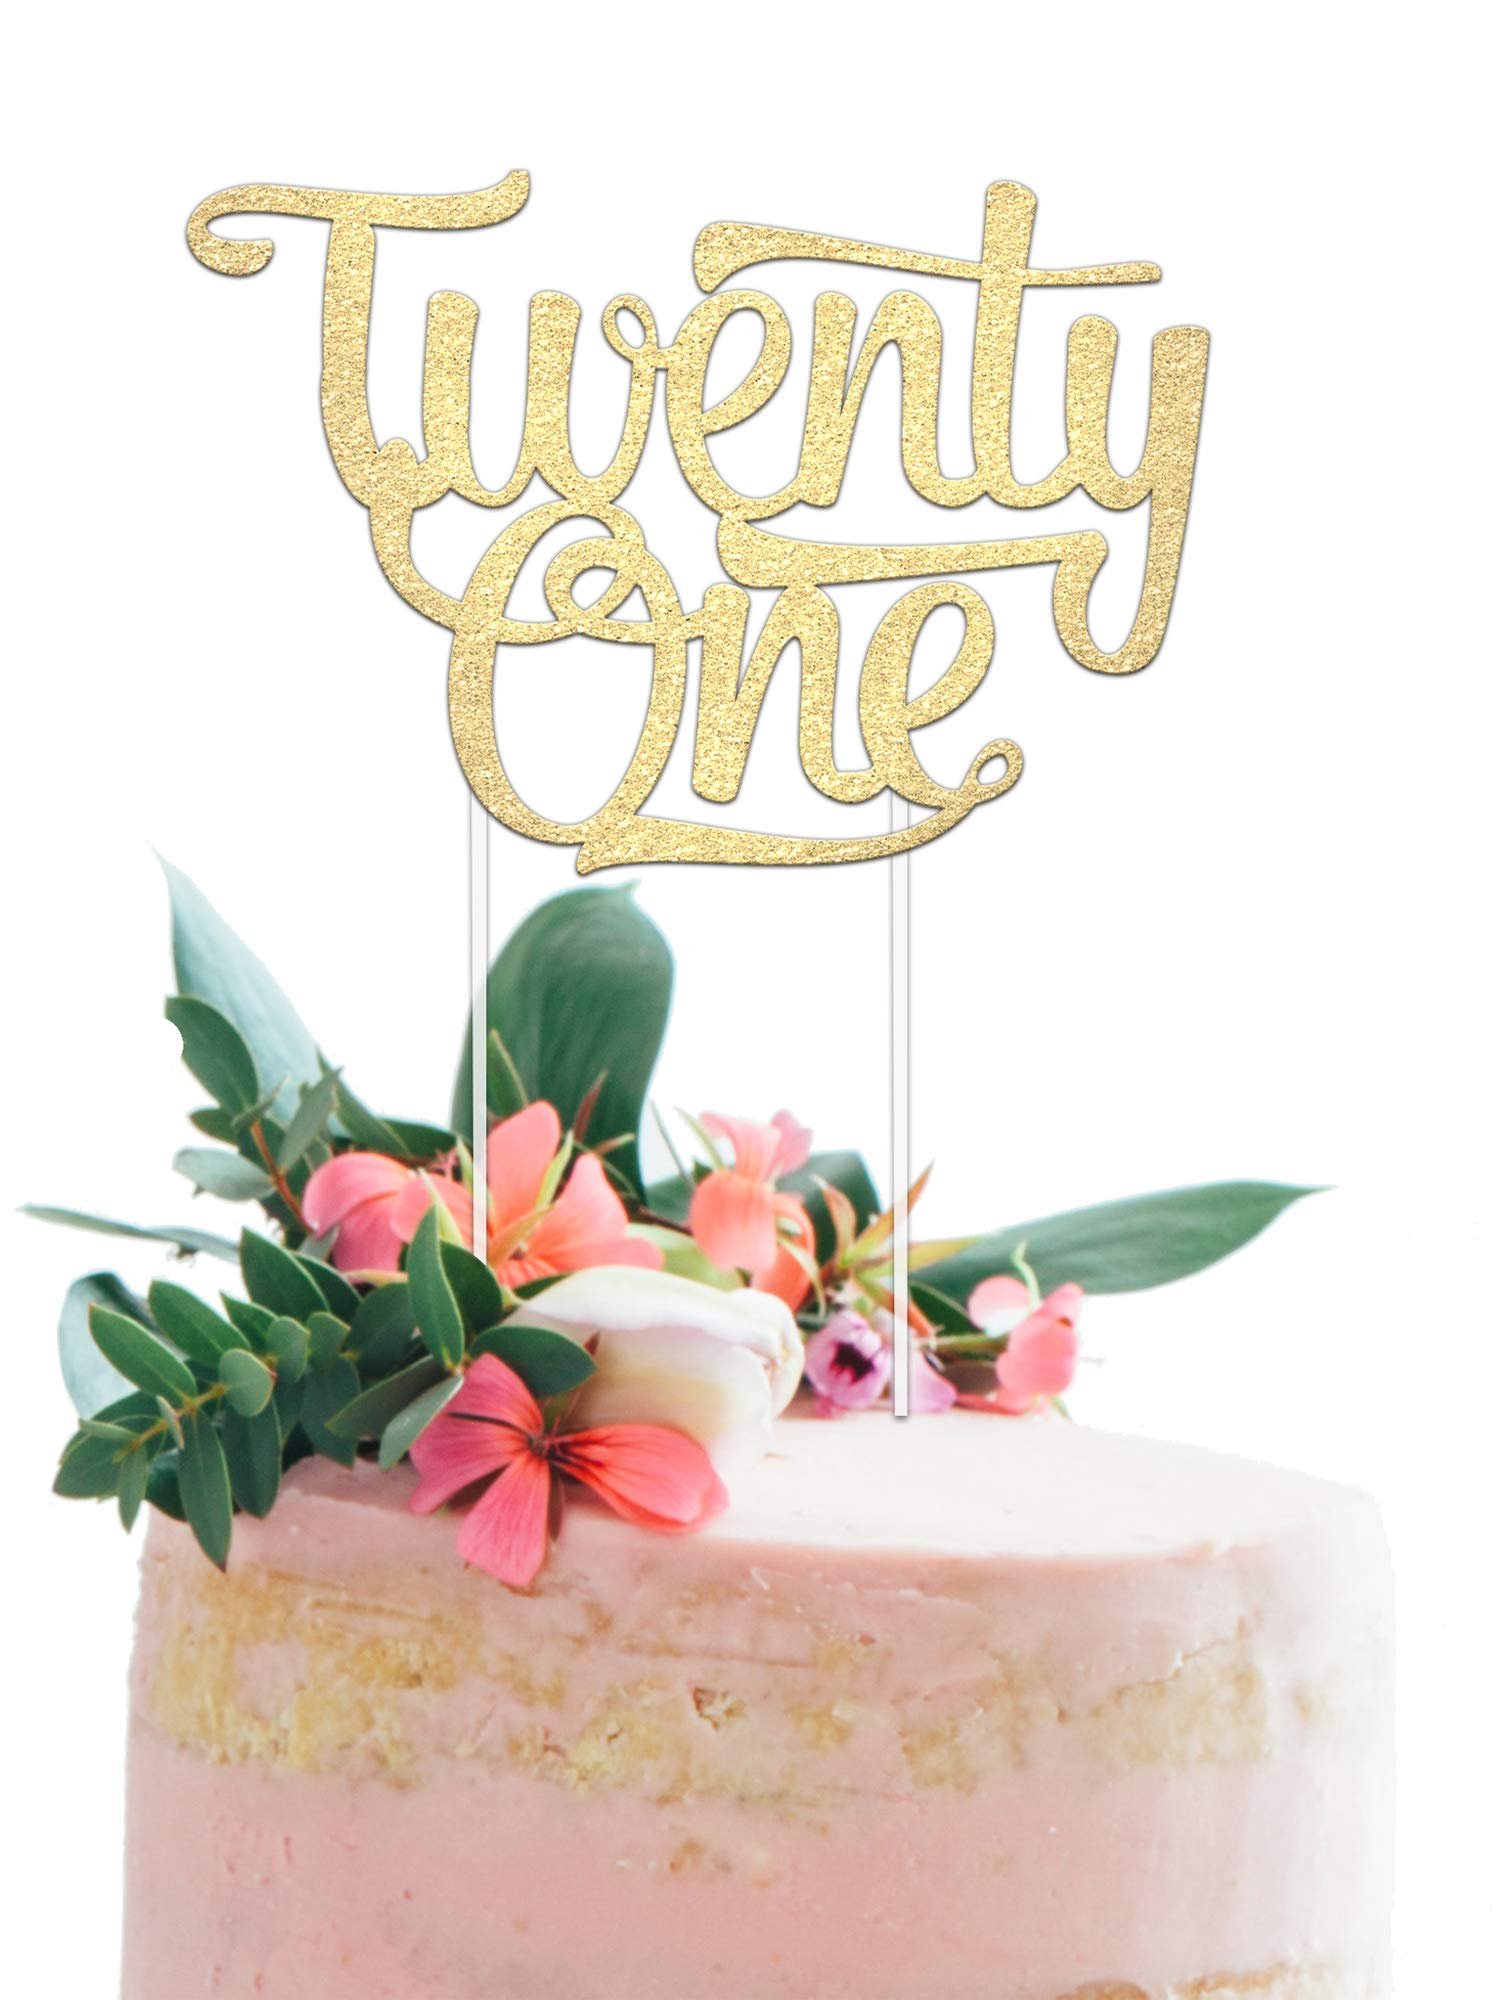 """21st Birthday Cake Topper - Twenty One - 7"""" x 5"""" Double Sided Champagne Gold Glitter Cardstock - Perfect Touch for Your BDay Decorations - Food-Safe & Eco-Friendly Stand by Merry Expressions"""